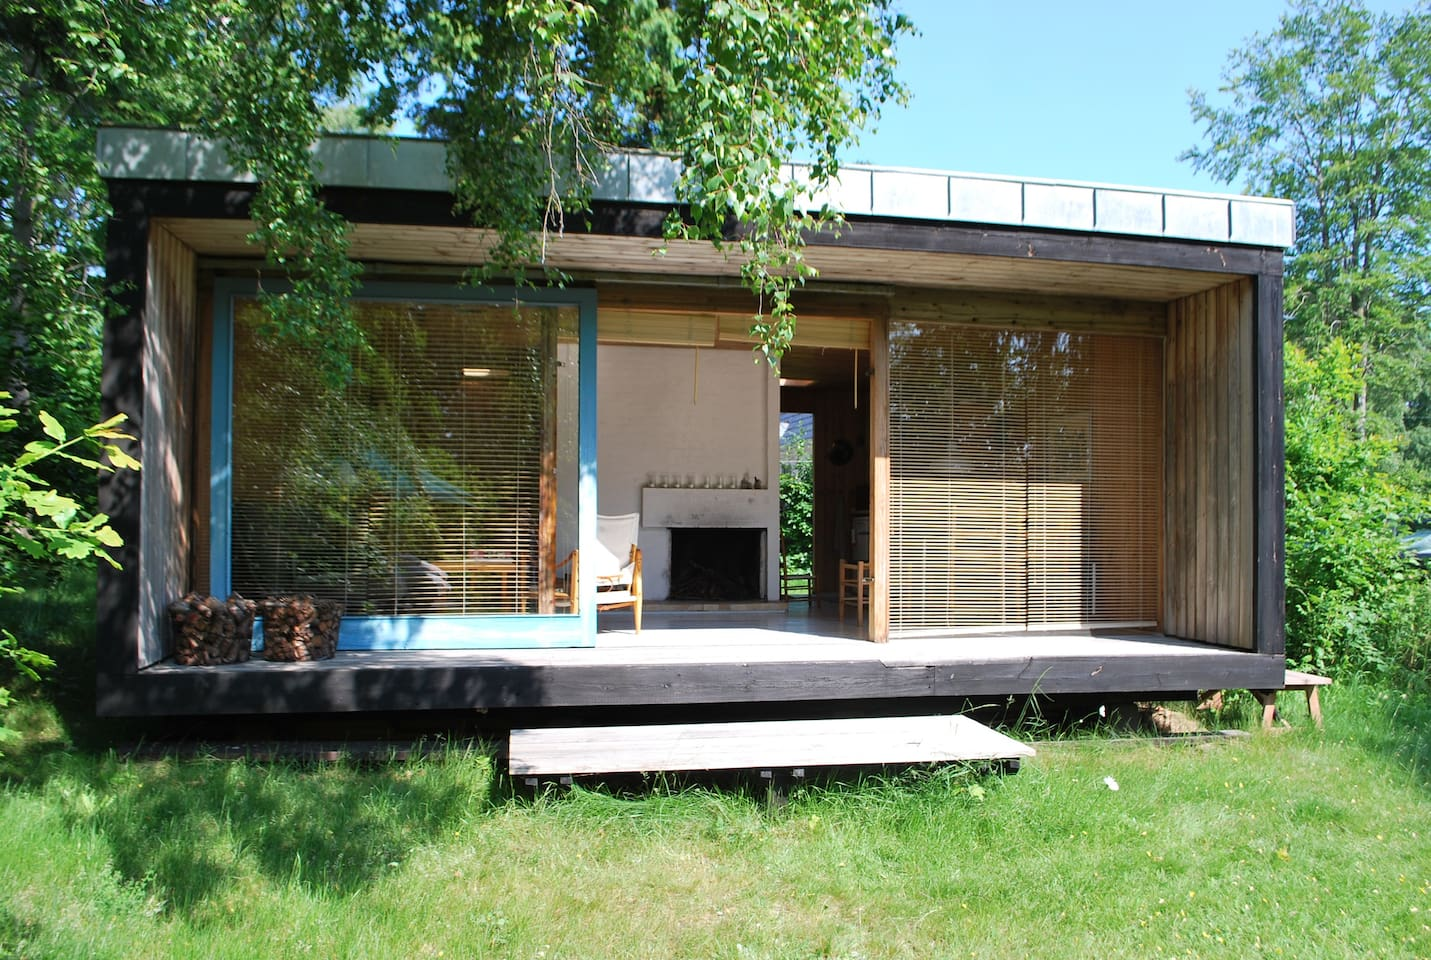 Top 20 Denmark Vacation Cabin Rentals and Cottage Rentals - Airbnb ...